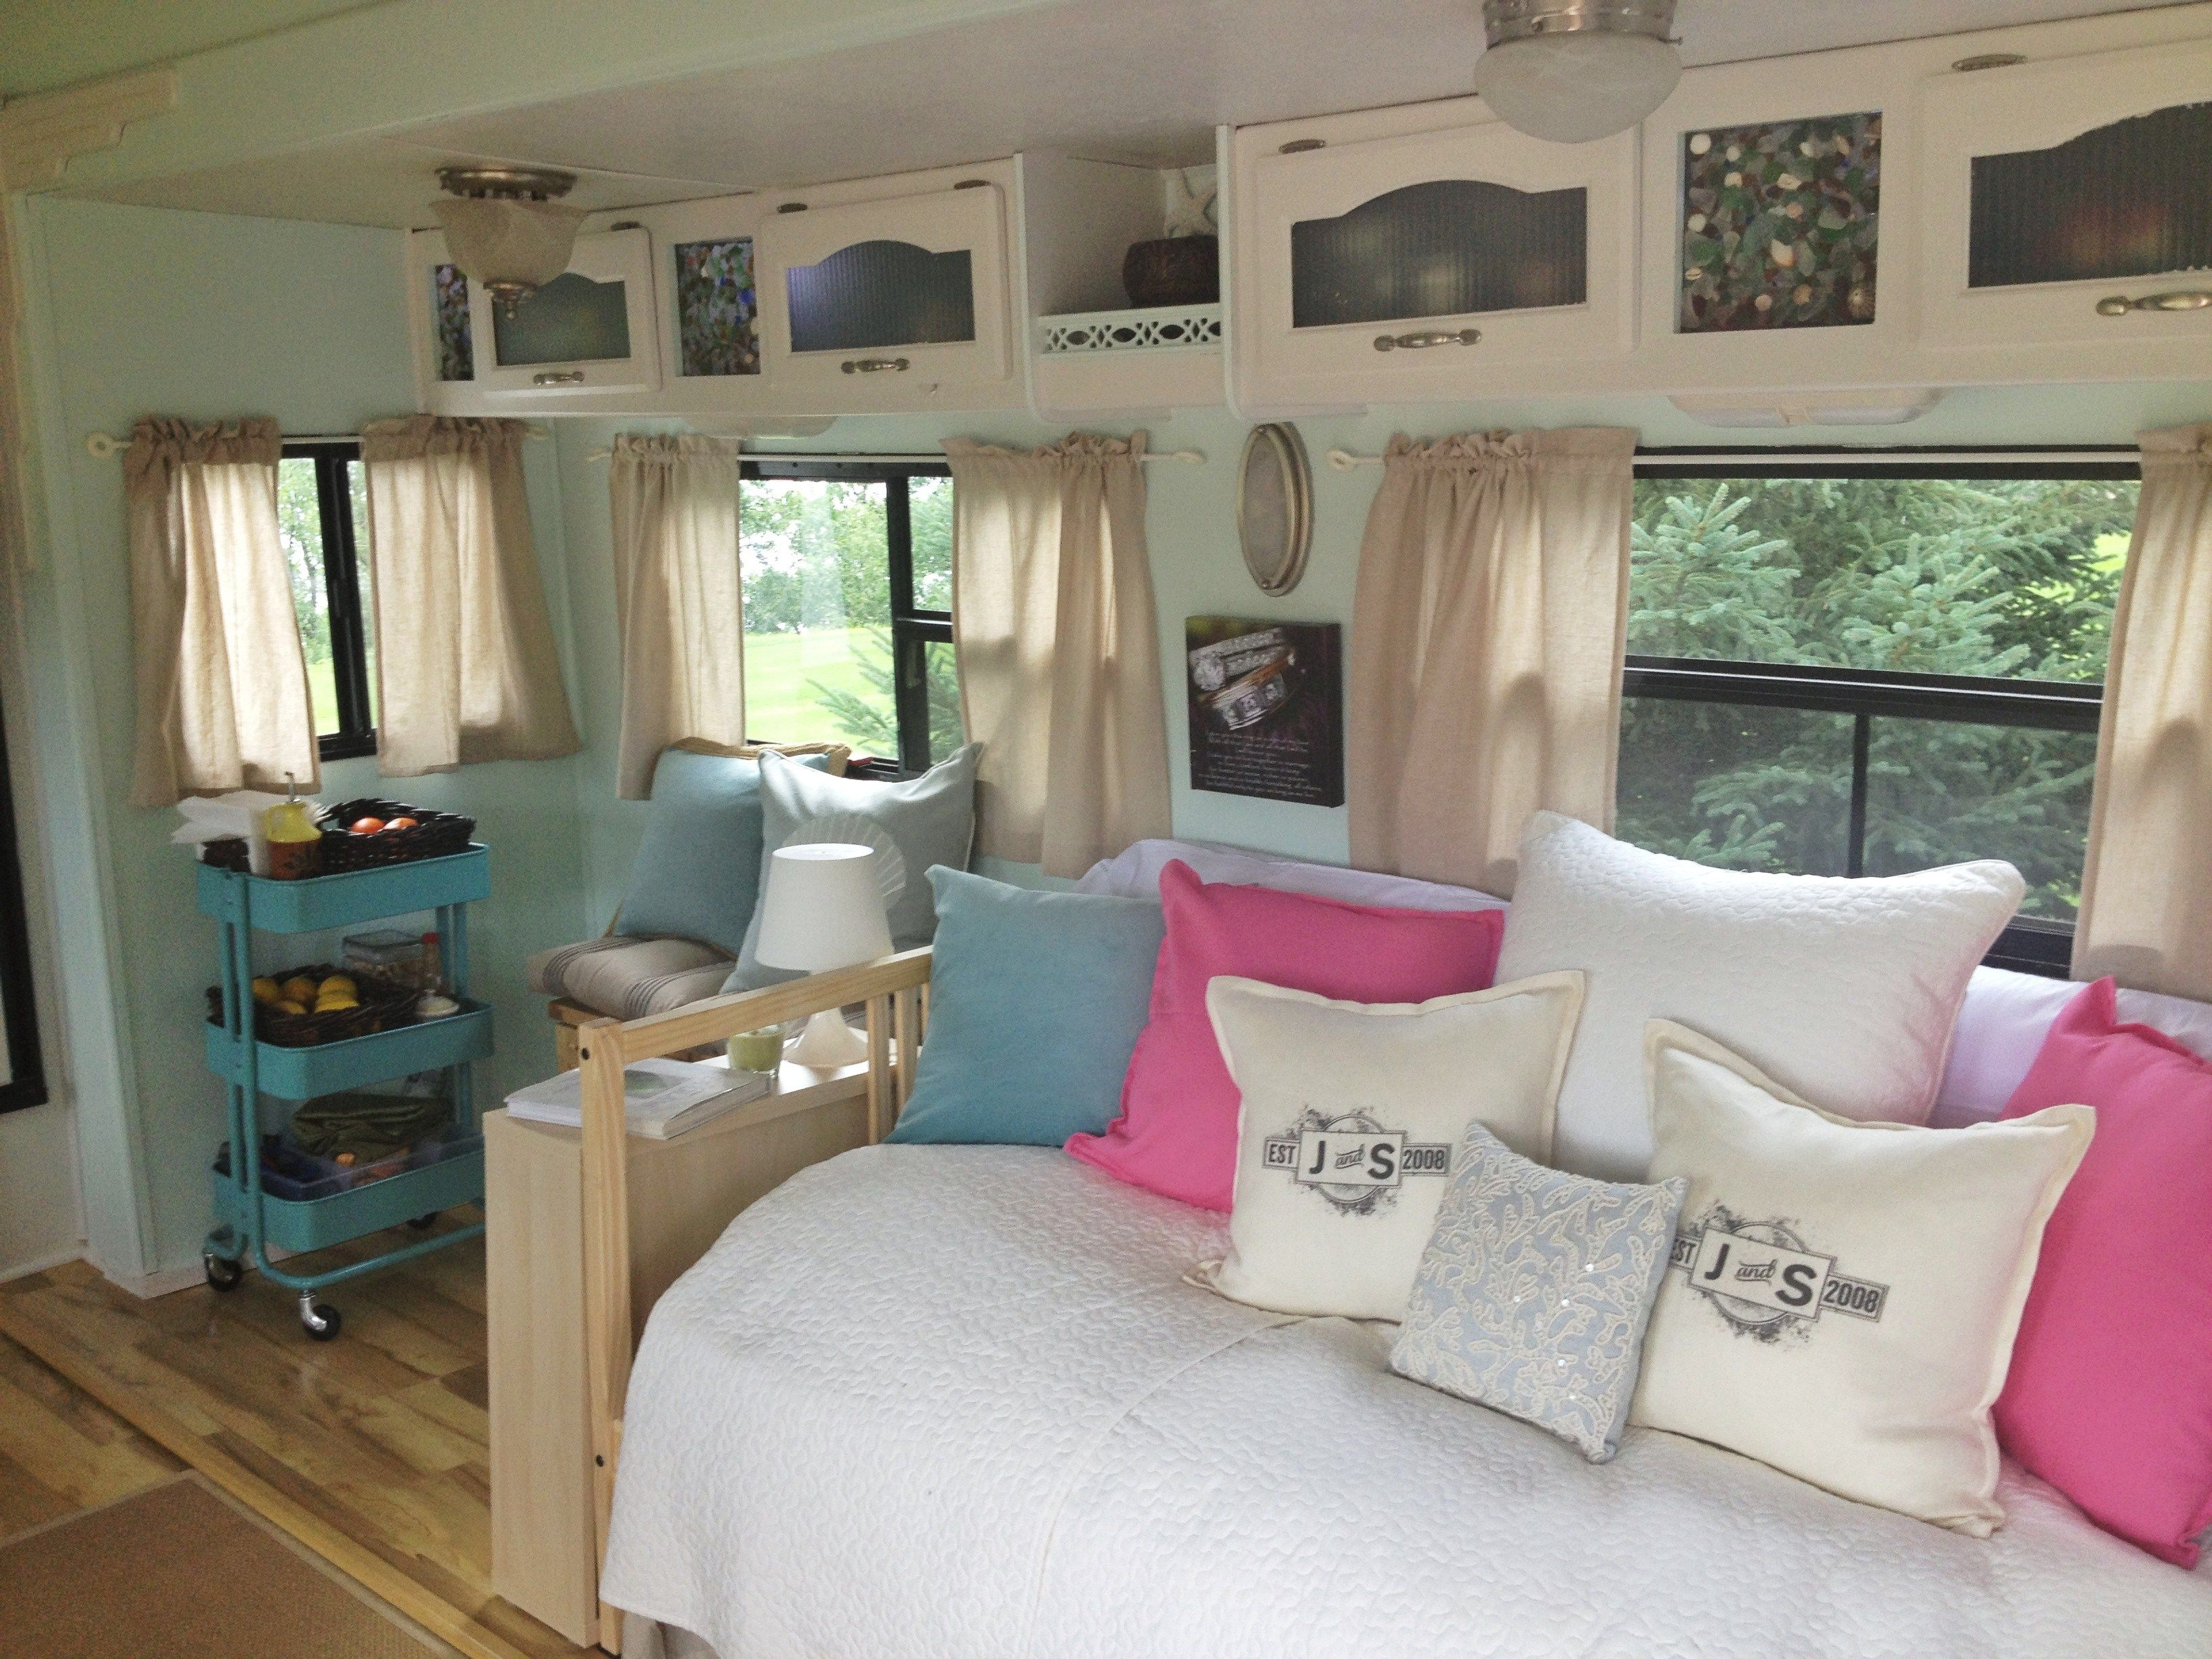 20 elegant motorhome interior design ideas motorhome interior and